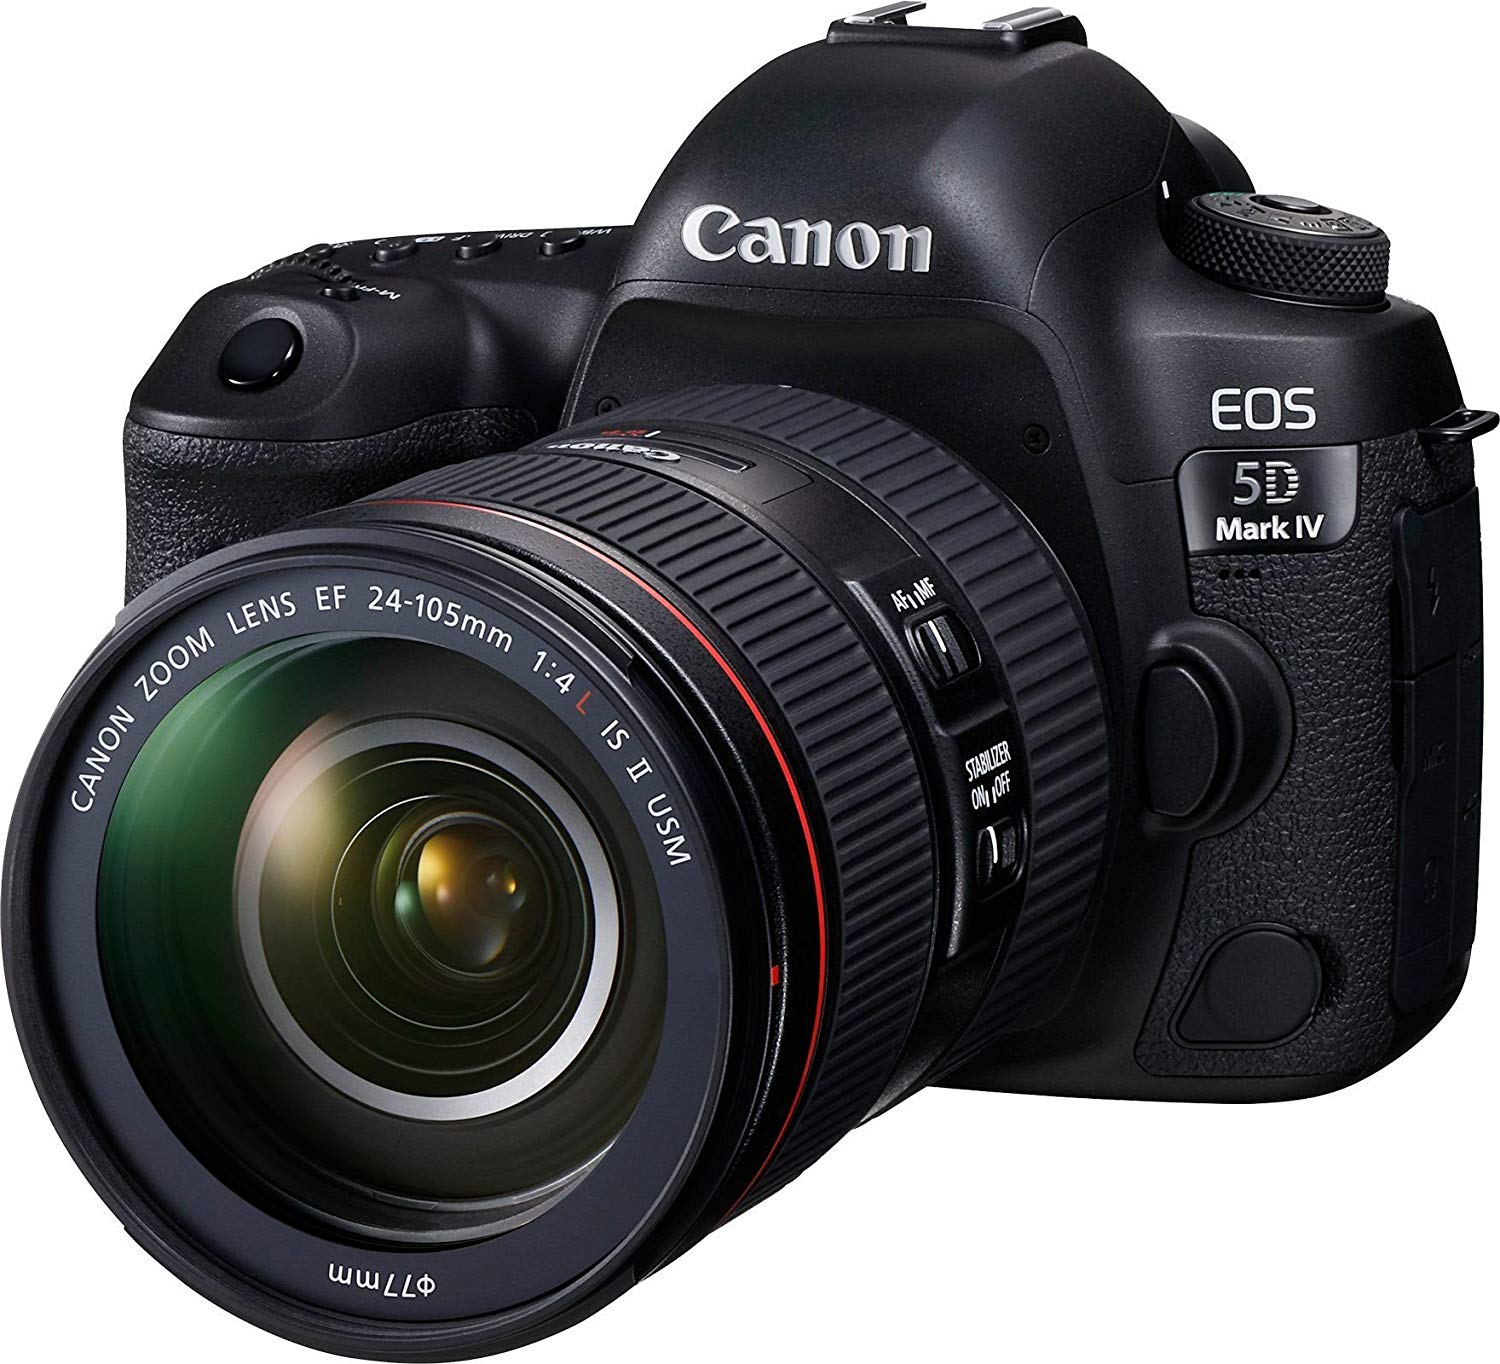 Canon EOS 5D Mark IV DSLR Camera with 24-105mm f/4L II Lens (Black)